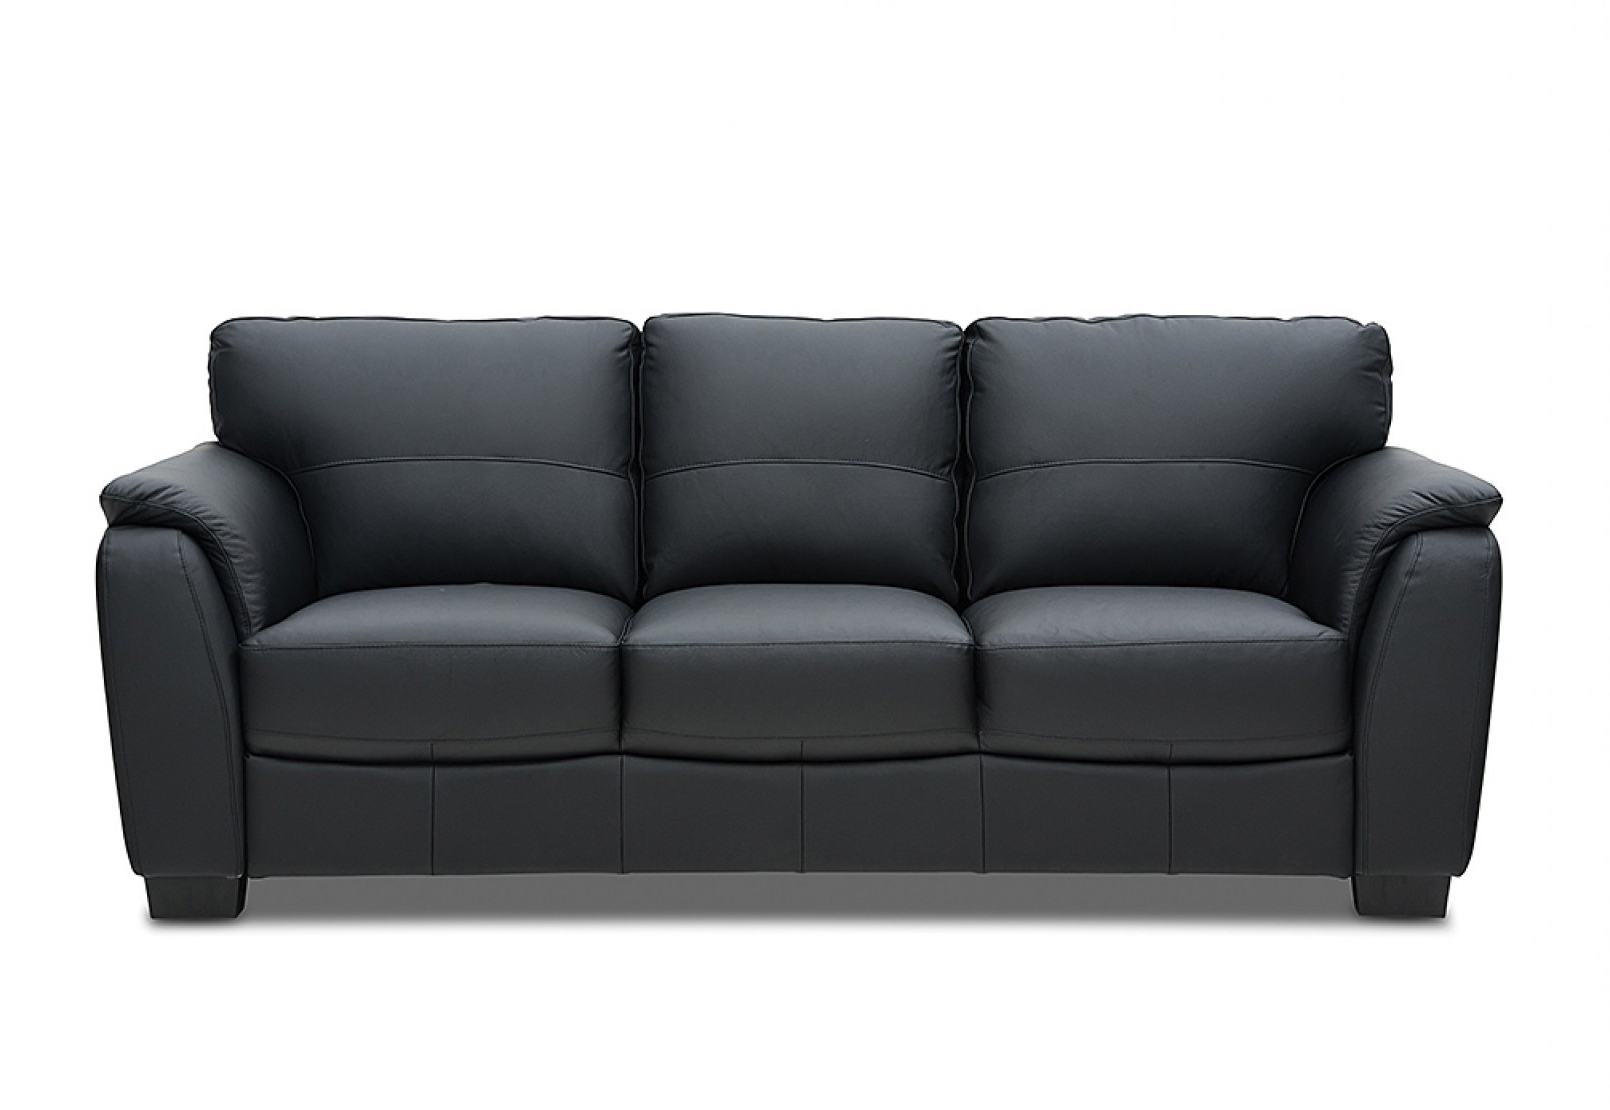 2019 Marissa Leather 3 Seater Sofa (View 1 of 20)